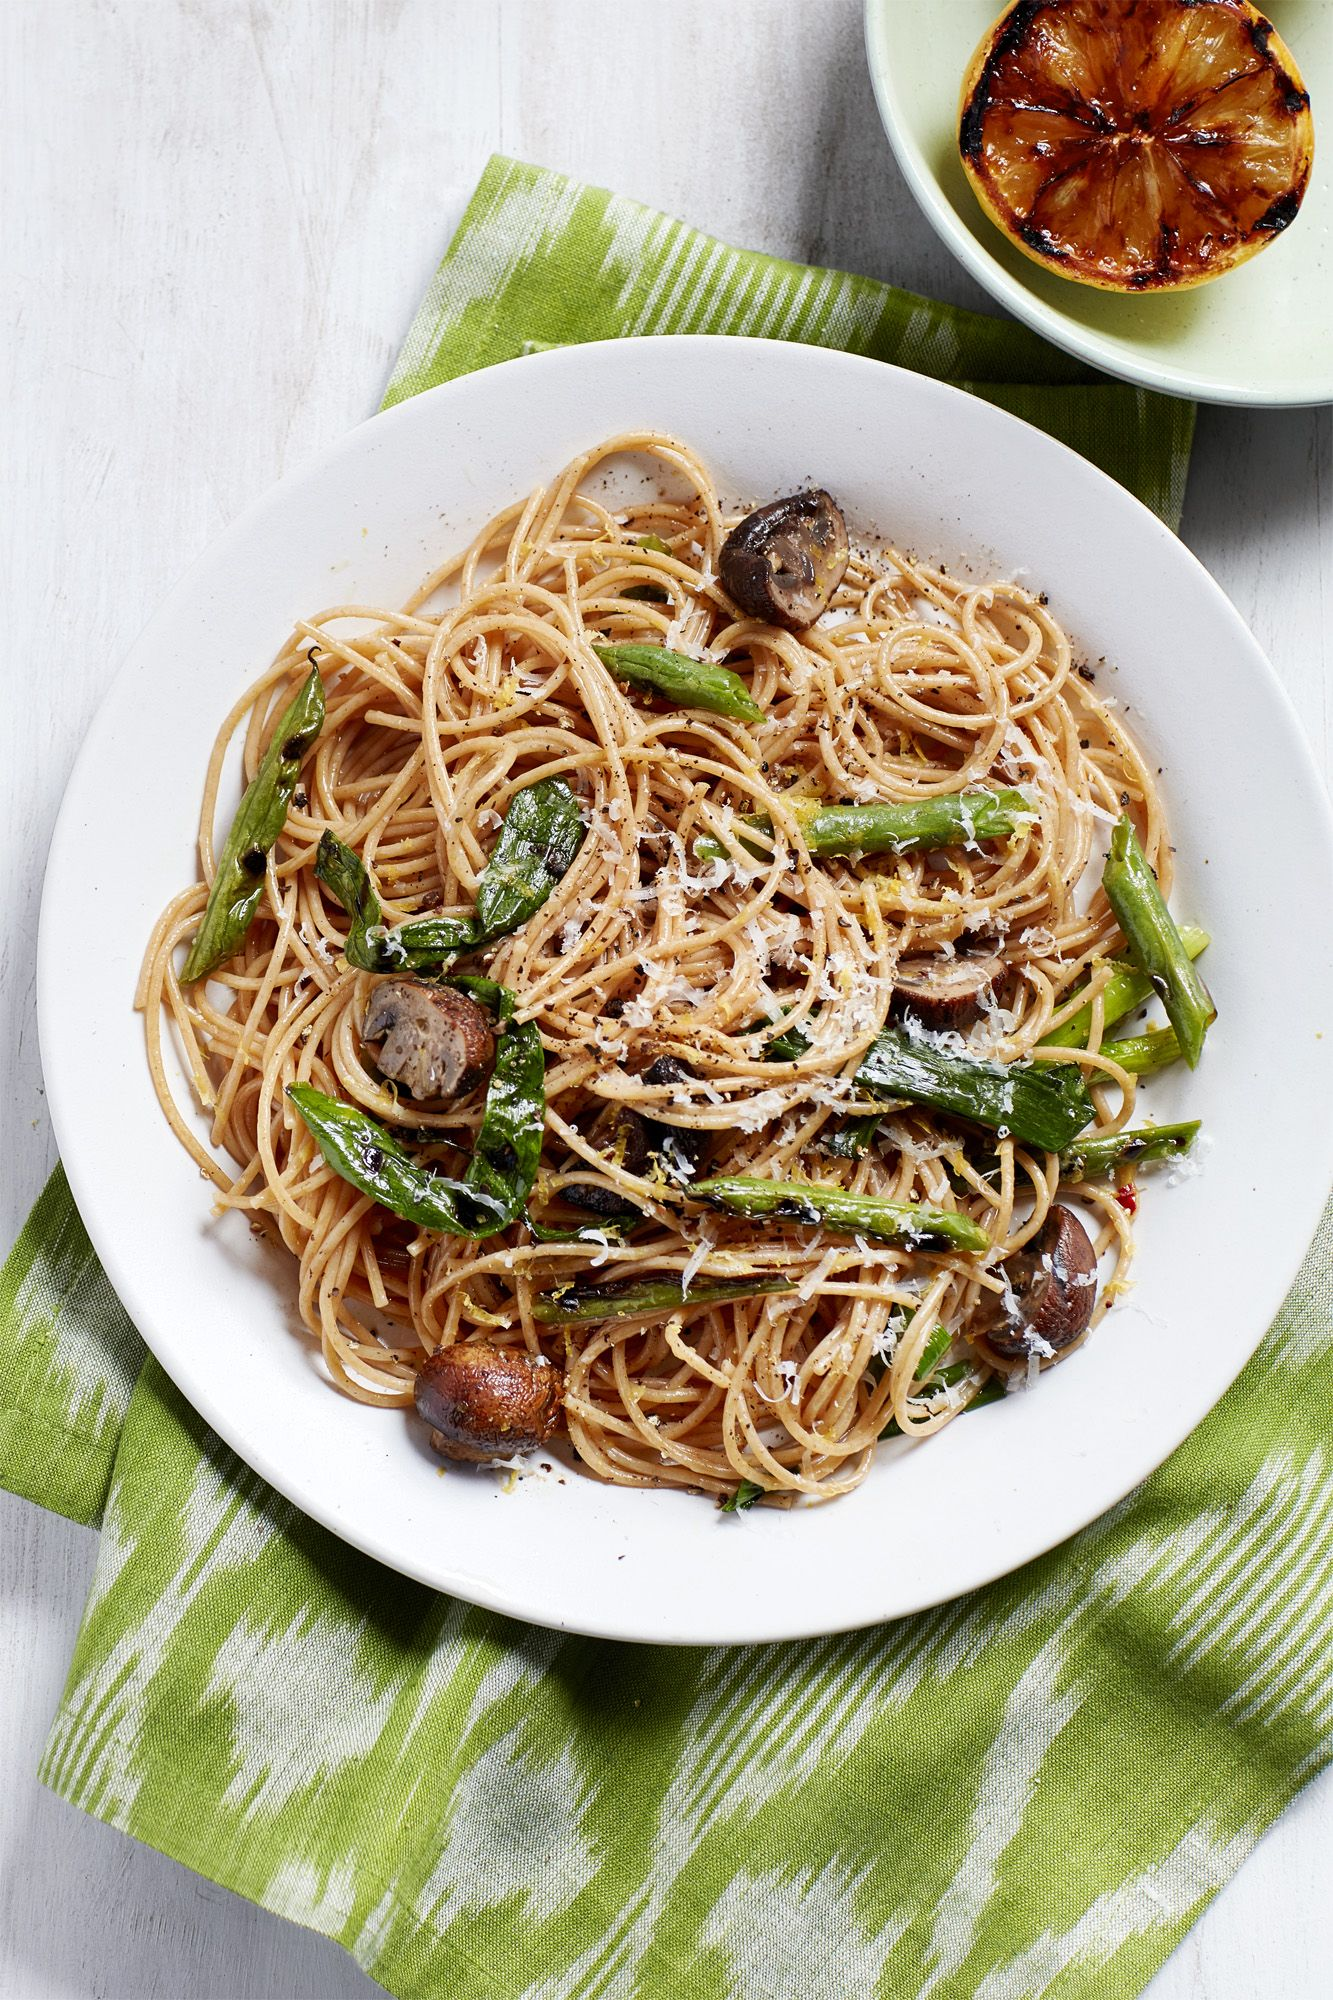 spaghetti with mushrooms and grilled green beans